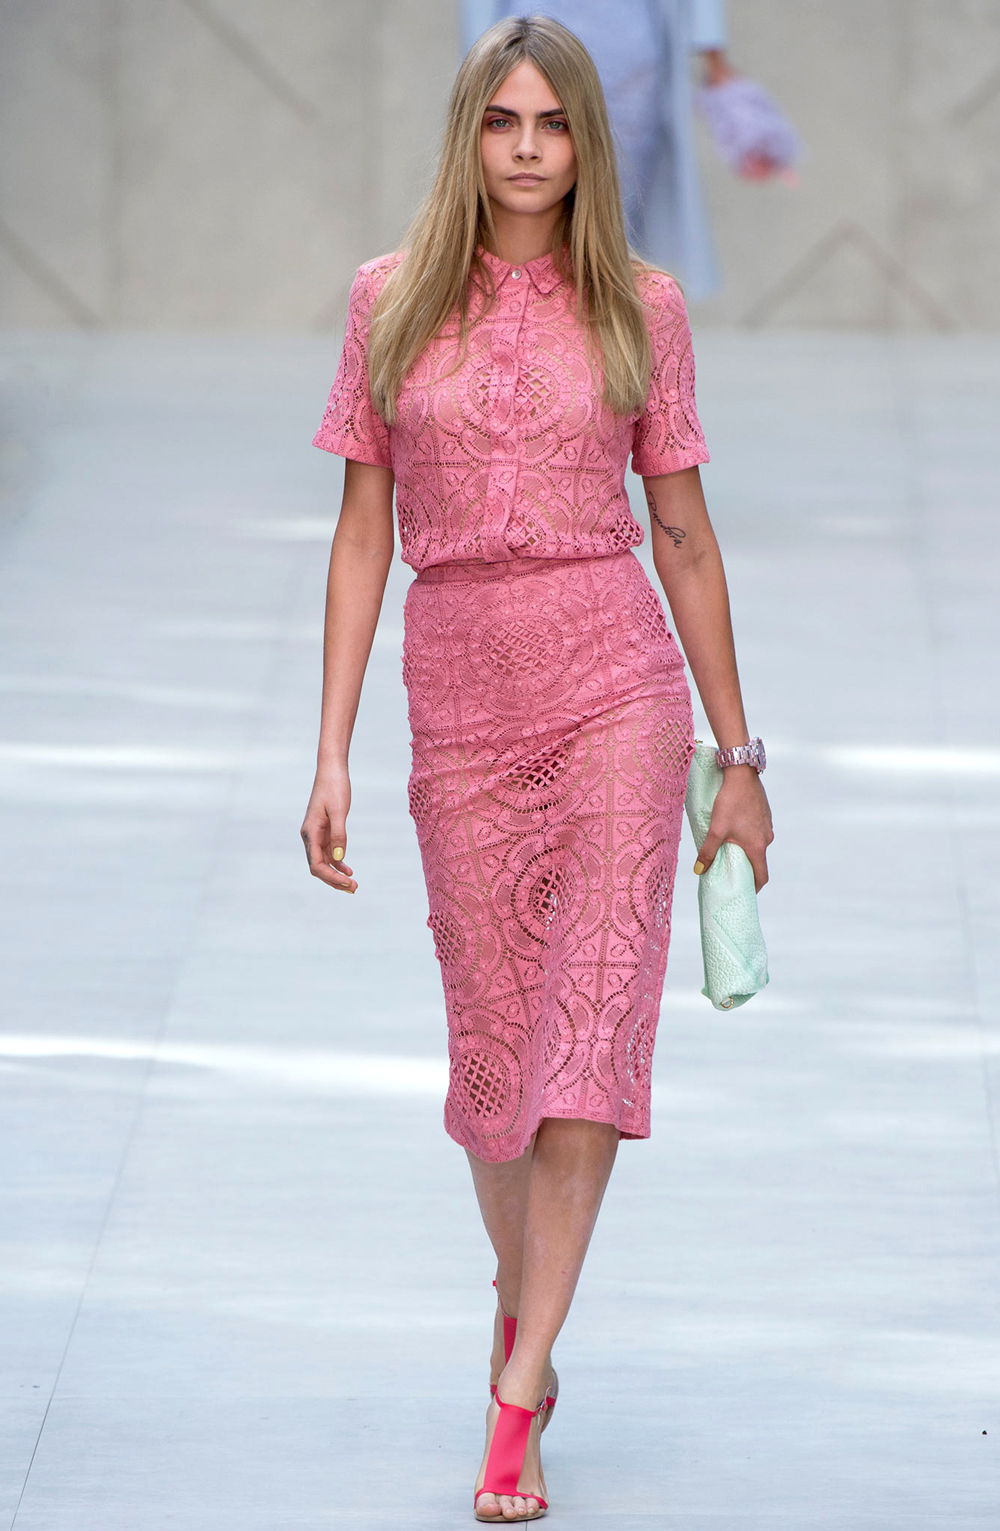 Burberry Prorsum Spring 2014 ready to wear collection and designer look for less